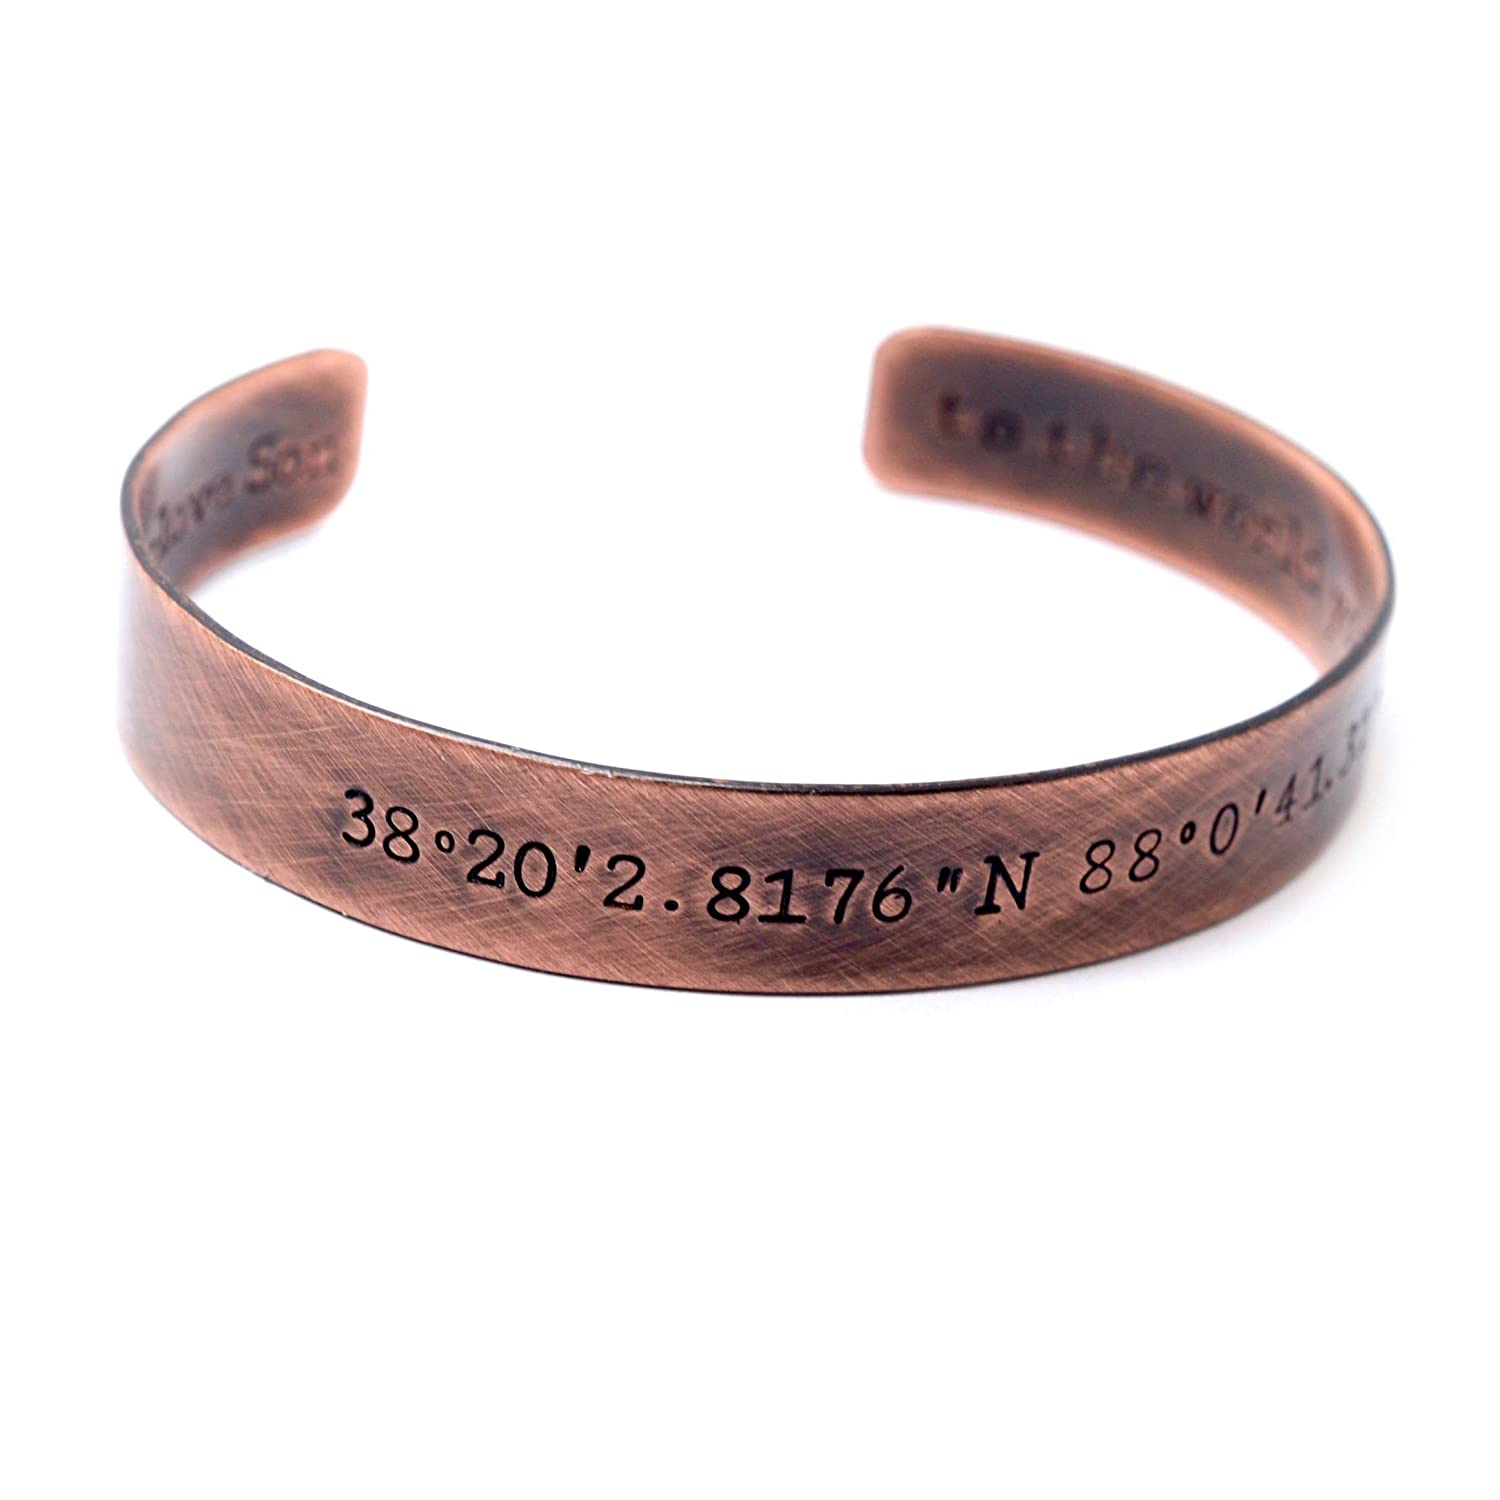 long-distance-relationship-gifts-bracelet